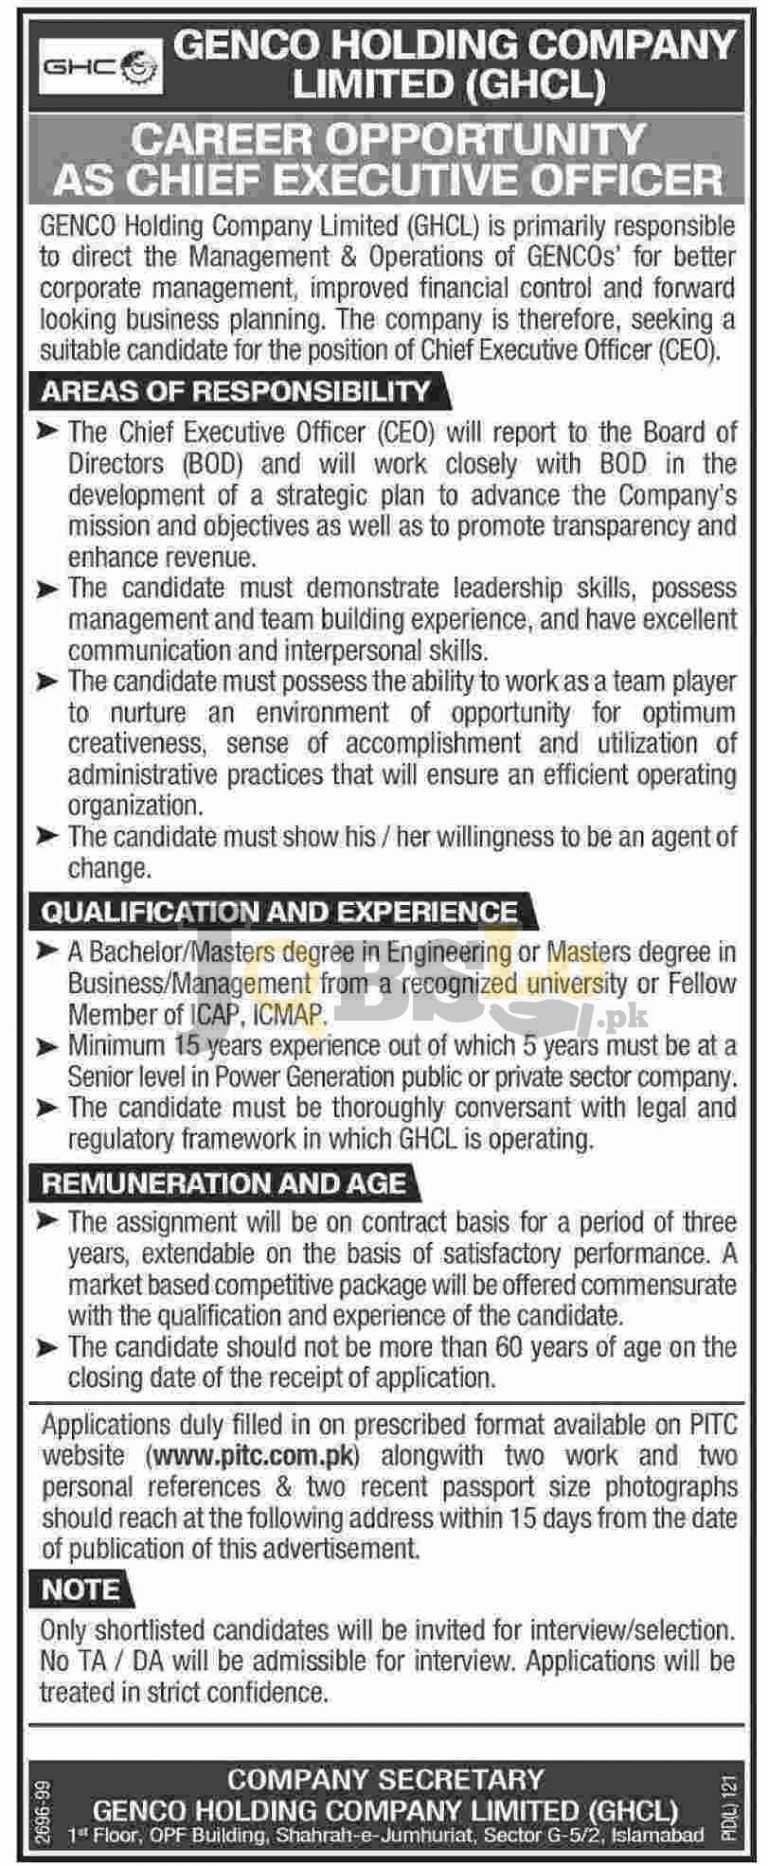 GENCO Holding Company Jobs July / August 2016 For CEO Online Form www,pitc.com.pk